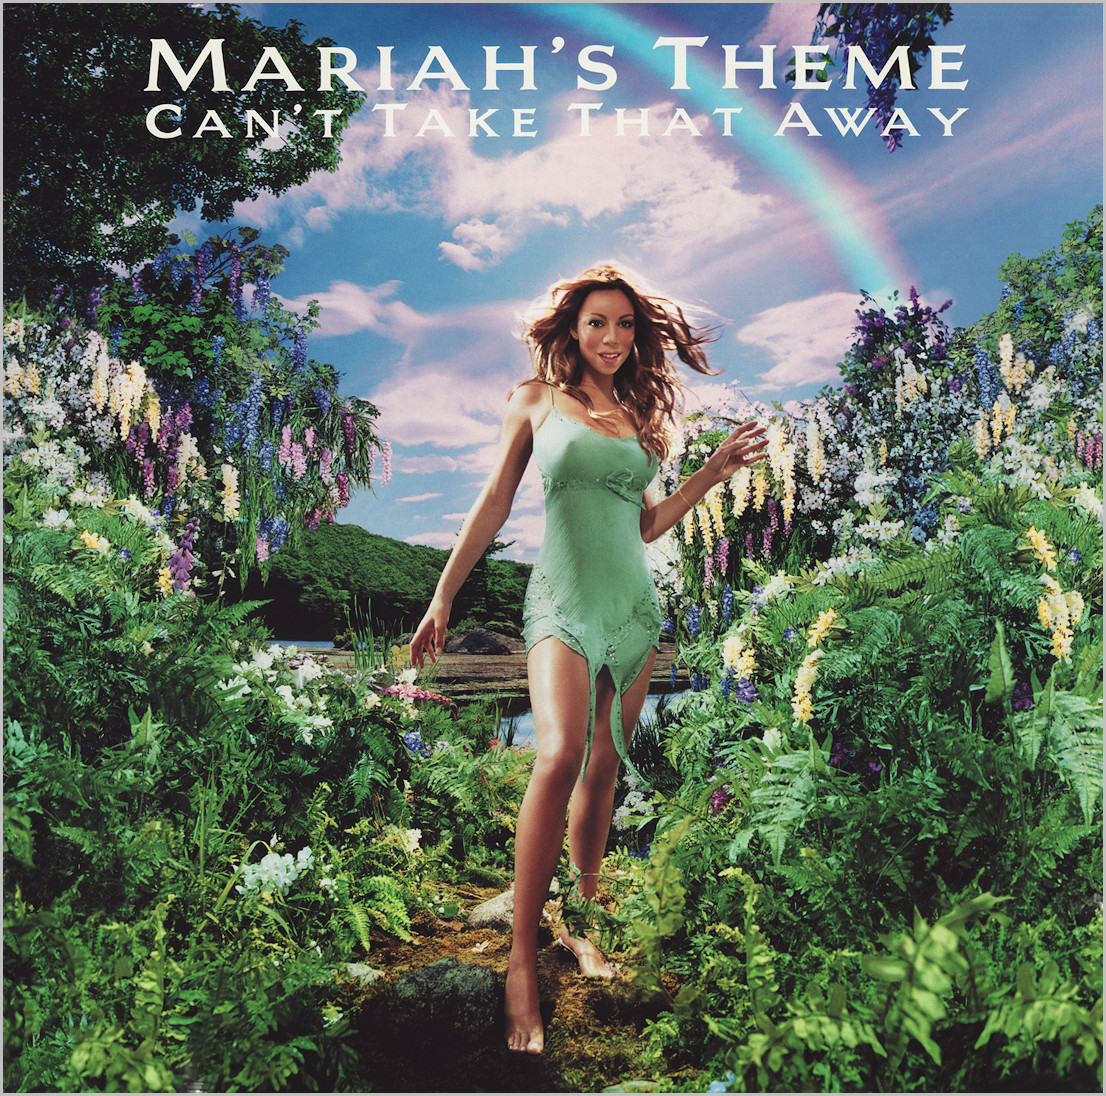 Mariah Carey : Can't Take That Away (David Morales)